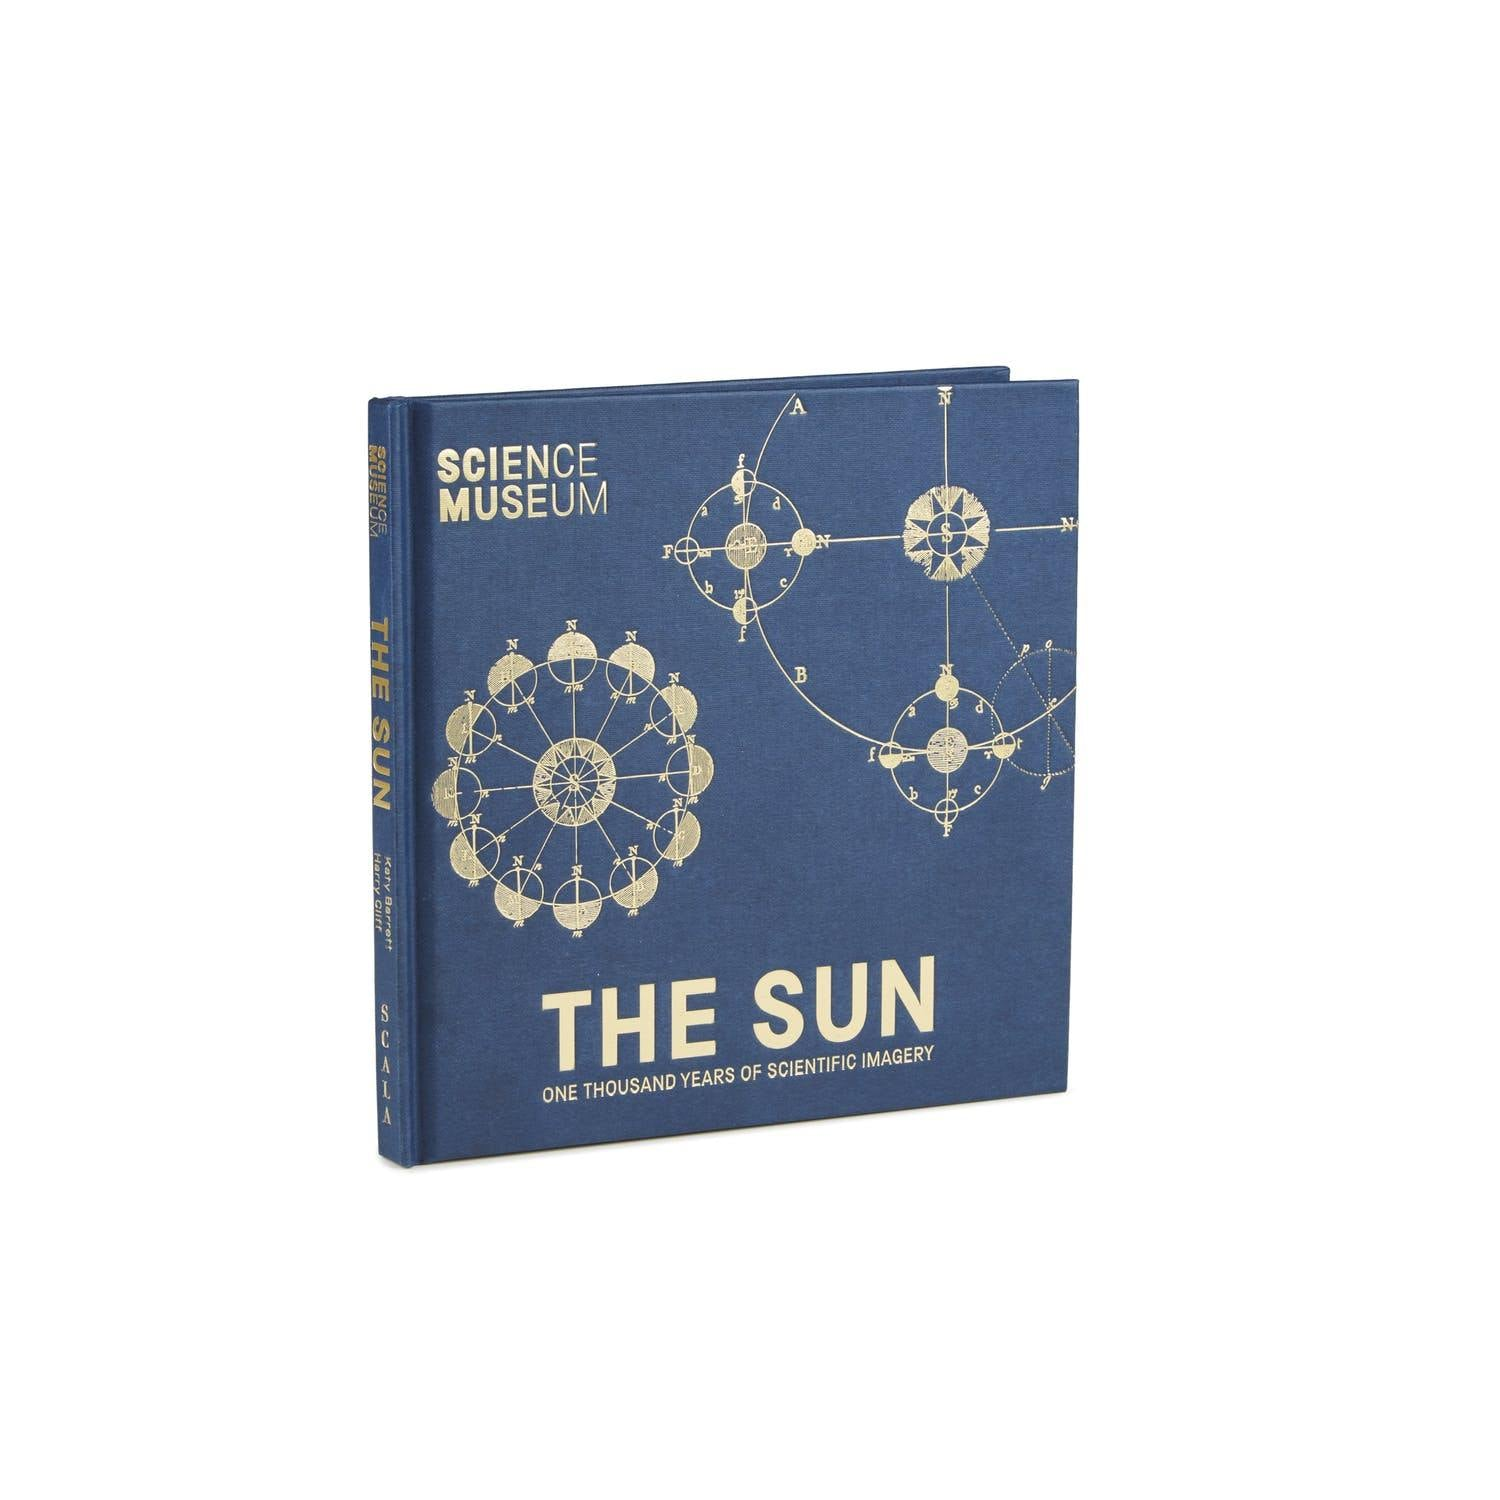 Science Museum The Sun: One Thousand Years of Scientific Imagery